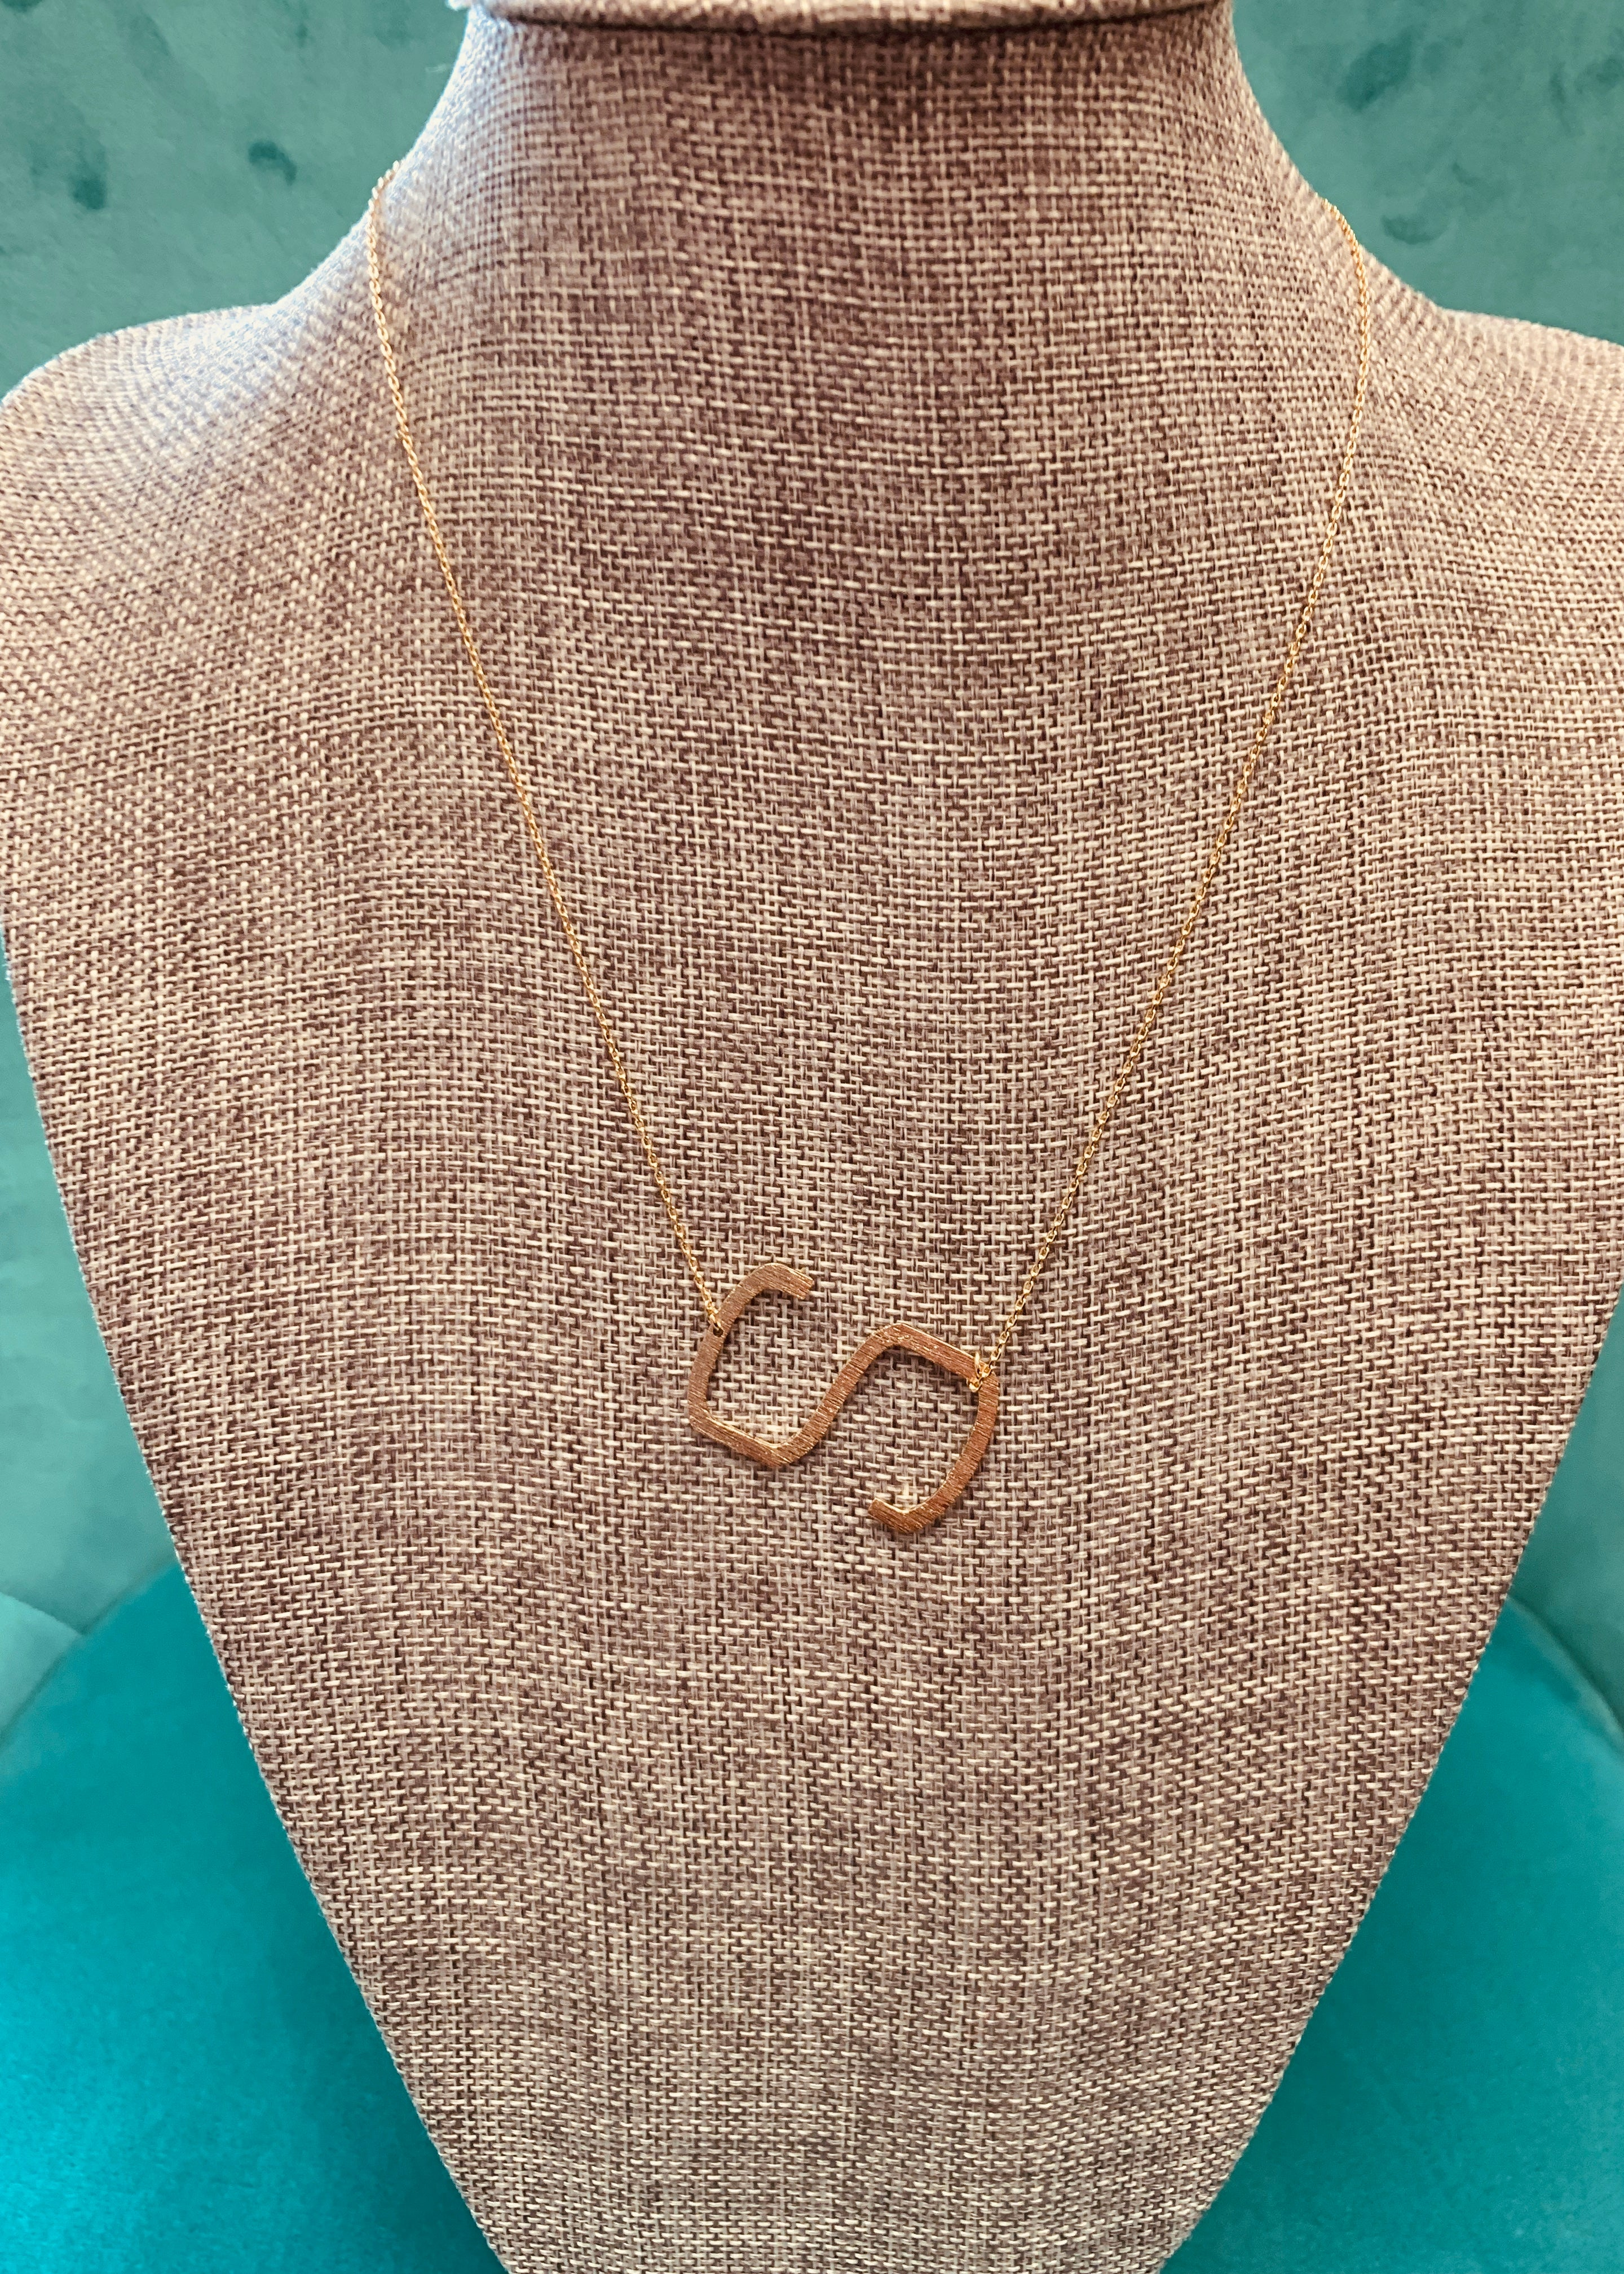 Initial Necklaces - 16 Letters Available